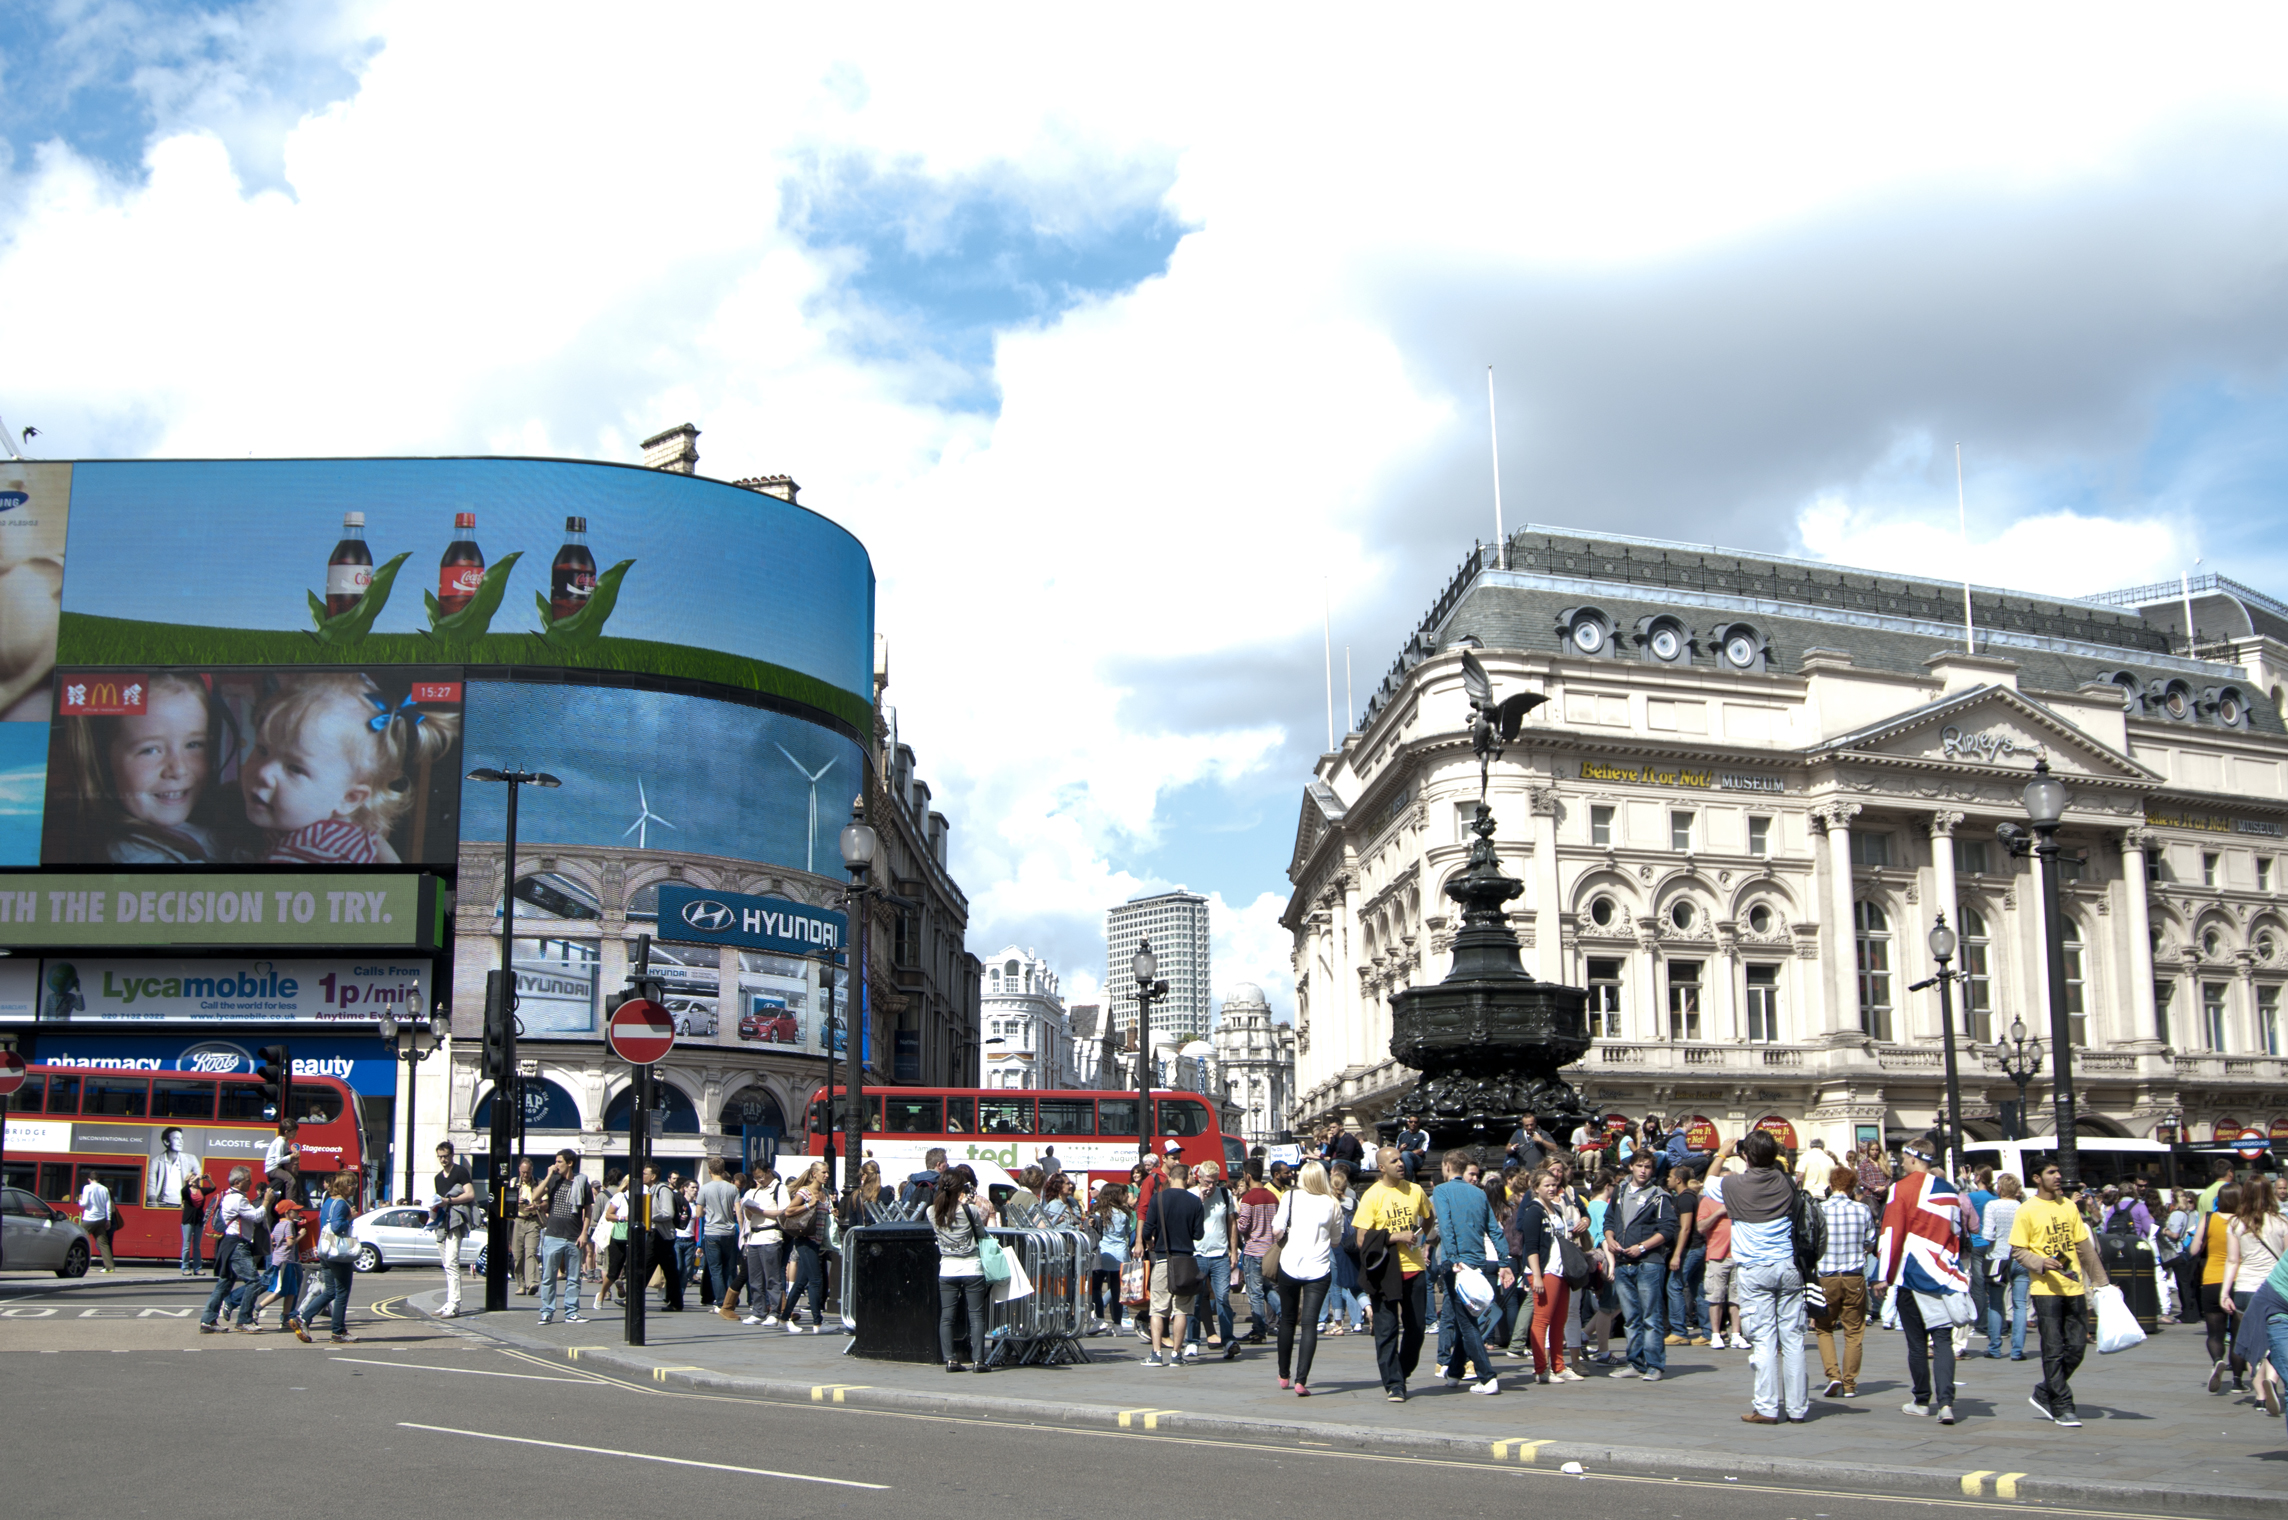 Piccadilly circus, London 2012